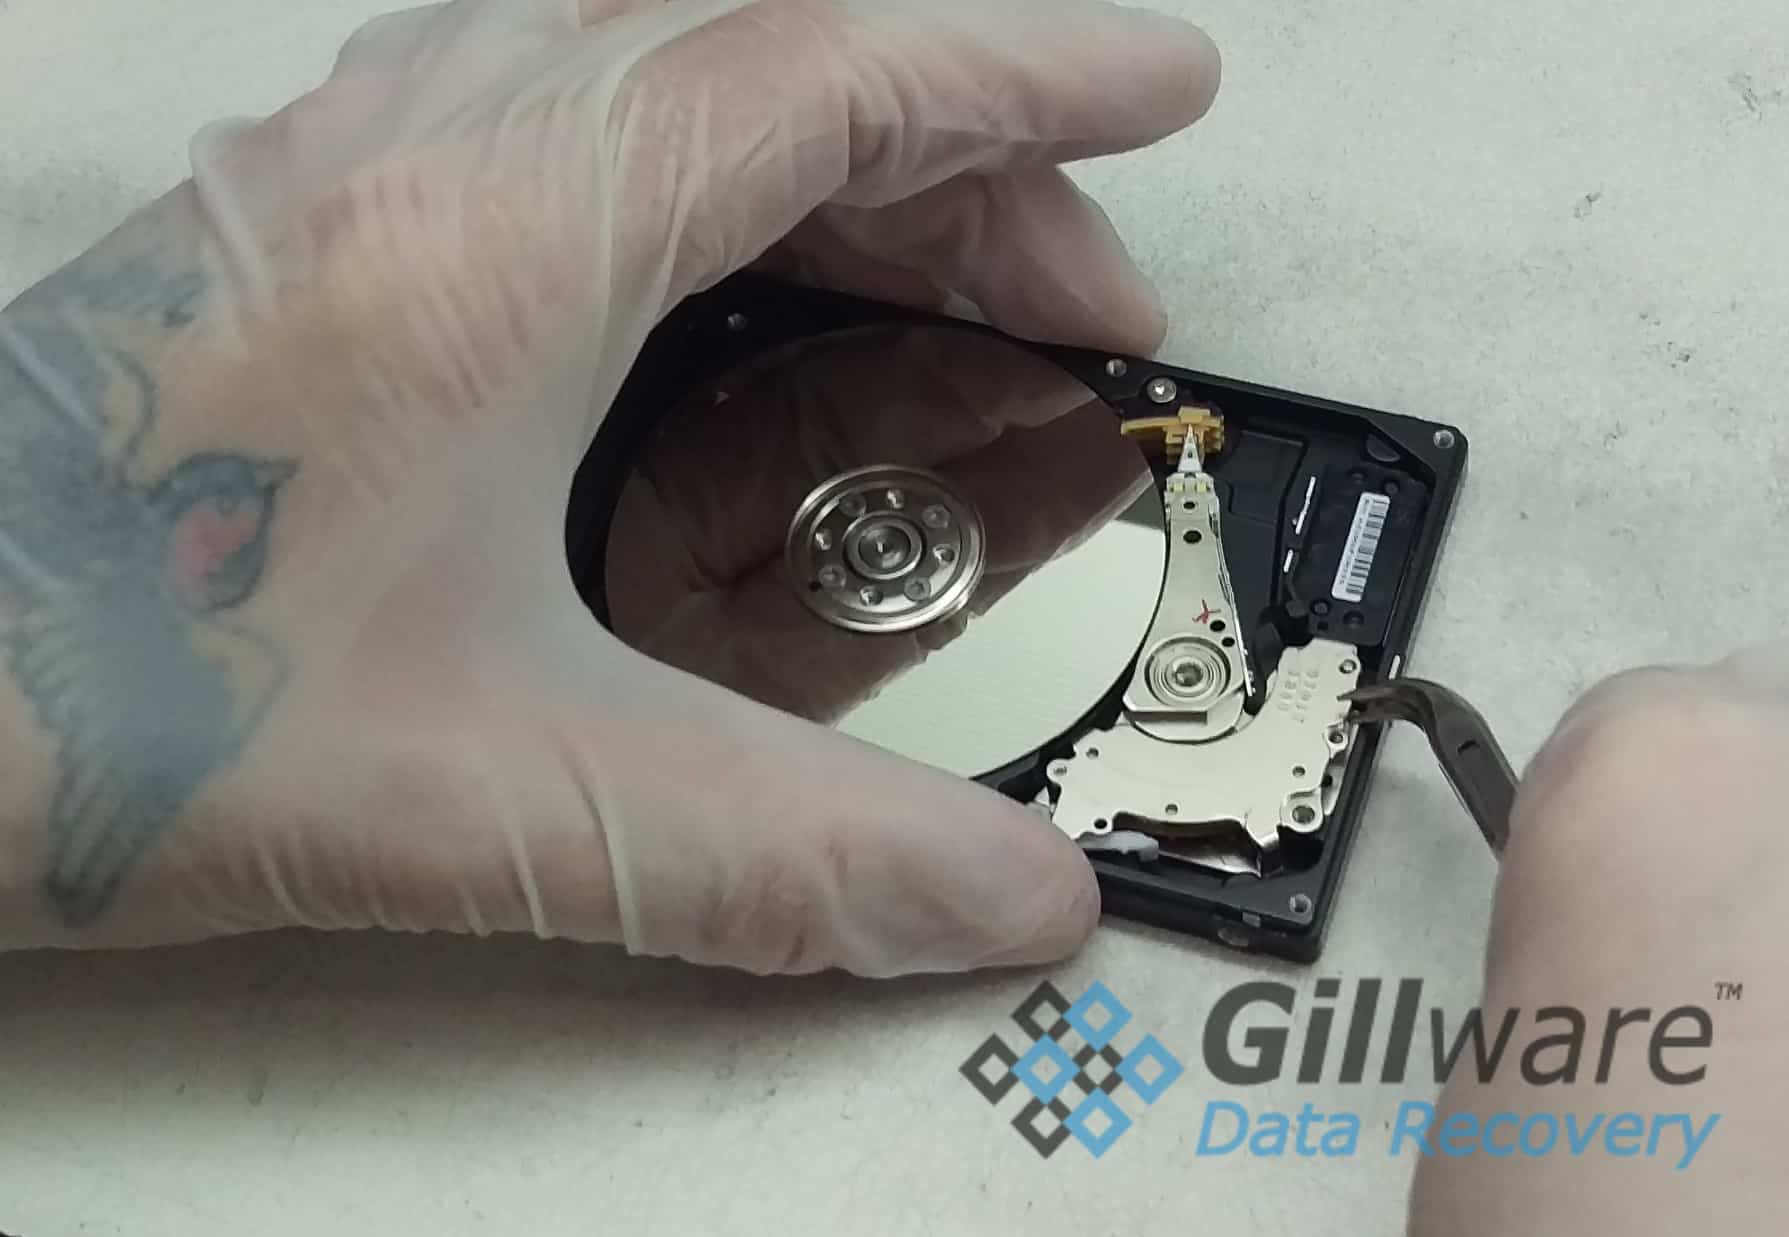 Inspecting a Clicking Hard Drive